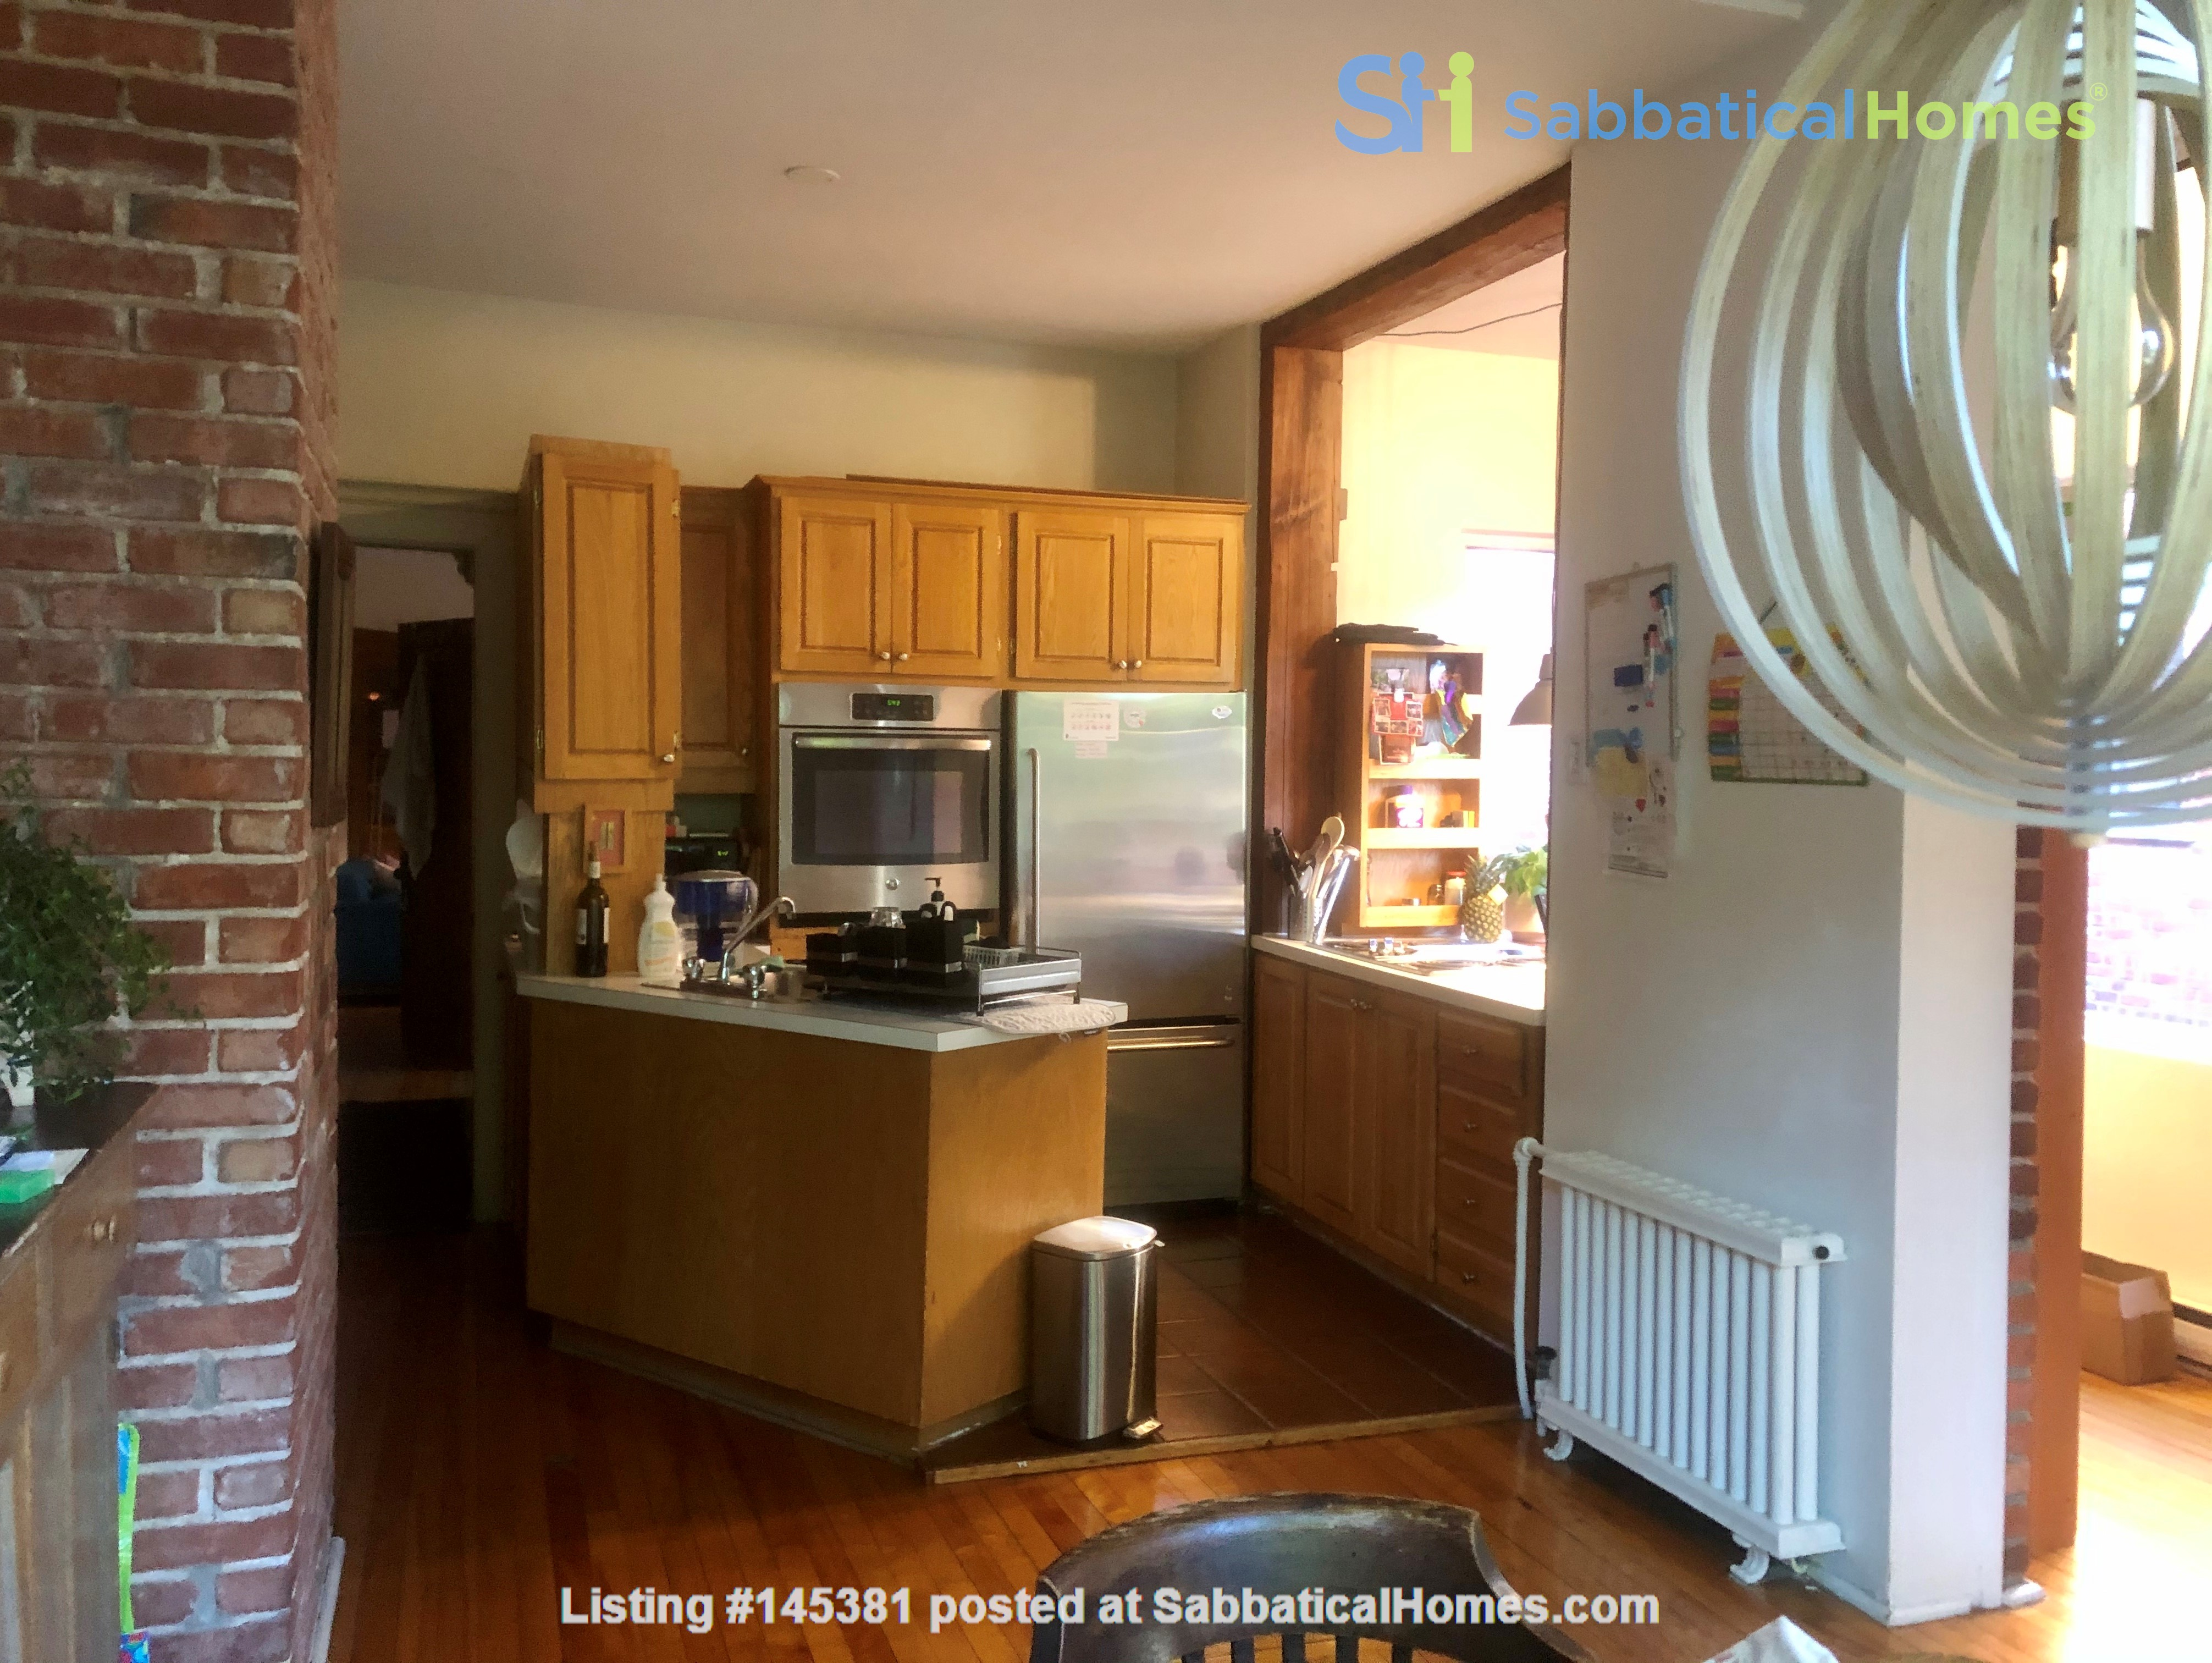 Furnished 2 BR Apartment for rent in Outremont - near Mile-End! Home Rental in Montréal, Québec, Canada 9